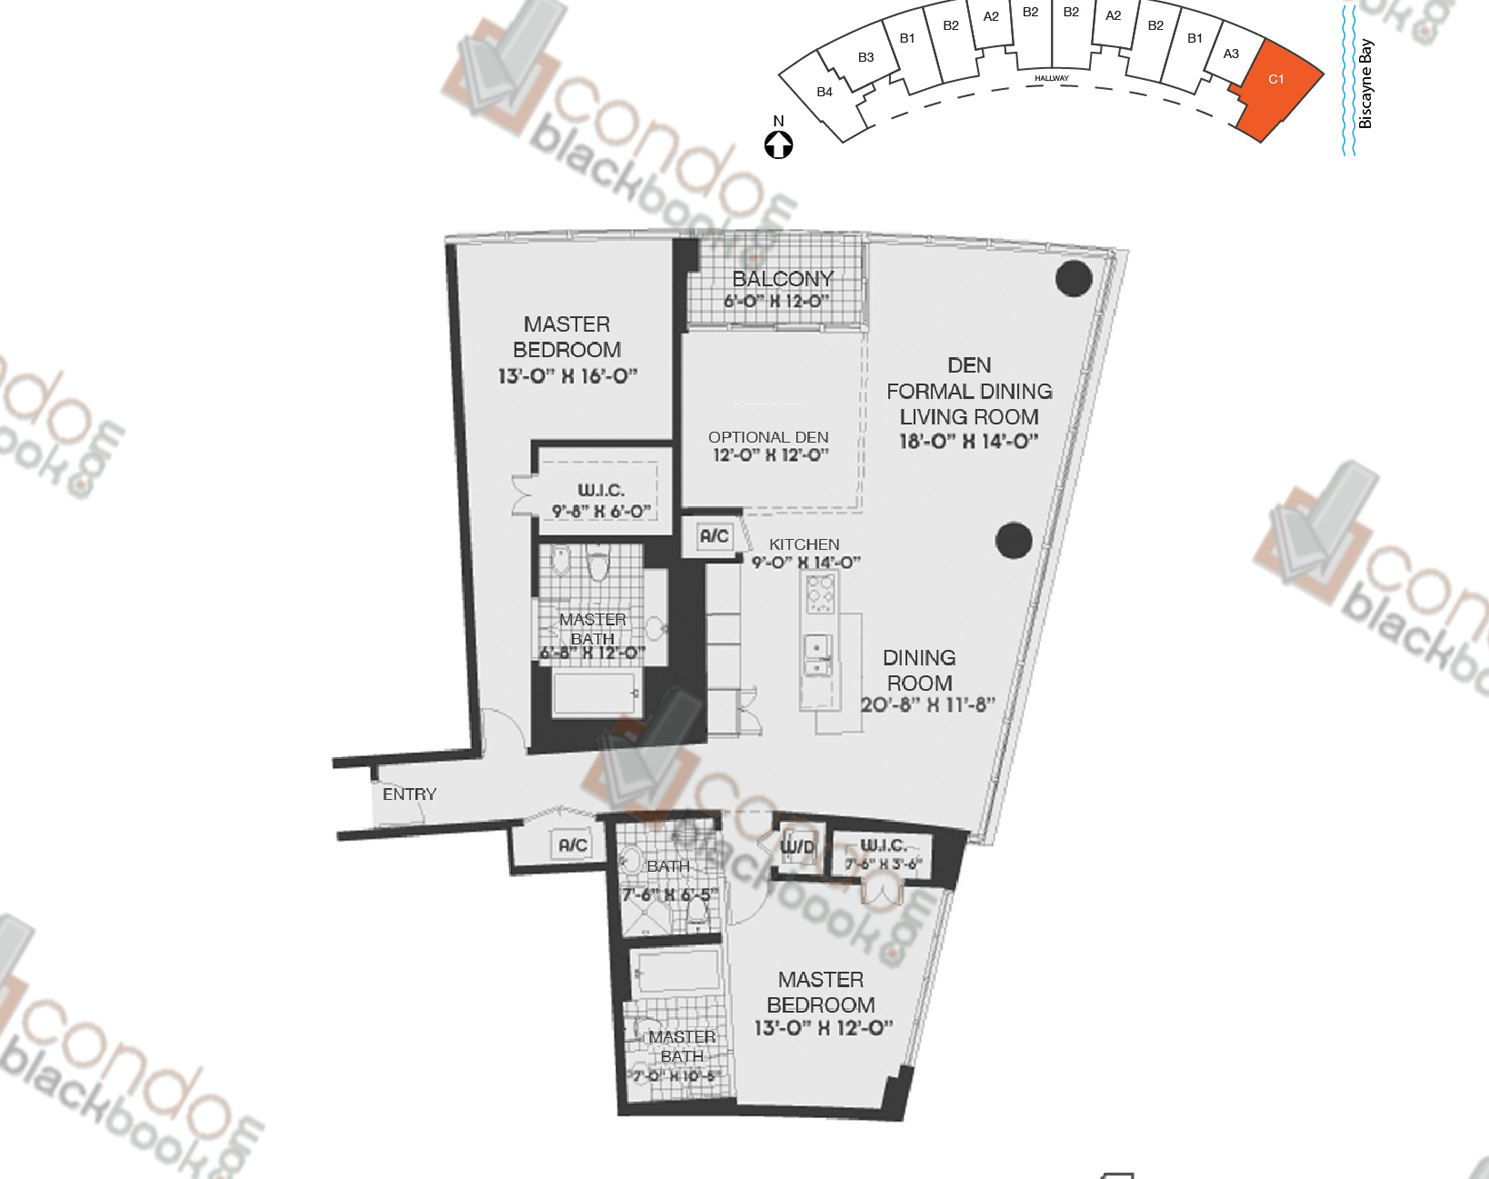 Floor plan for Blue Edgewater Miami, model C1, line 12, 2/3 bedrooms, 2084 sq ft